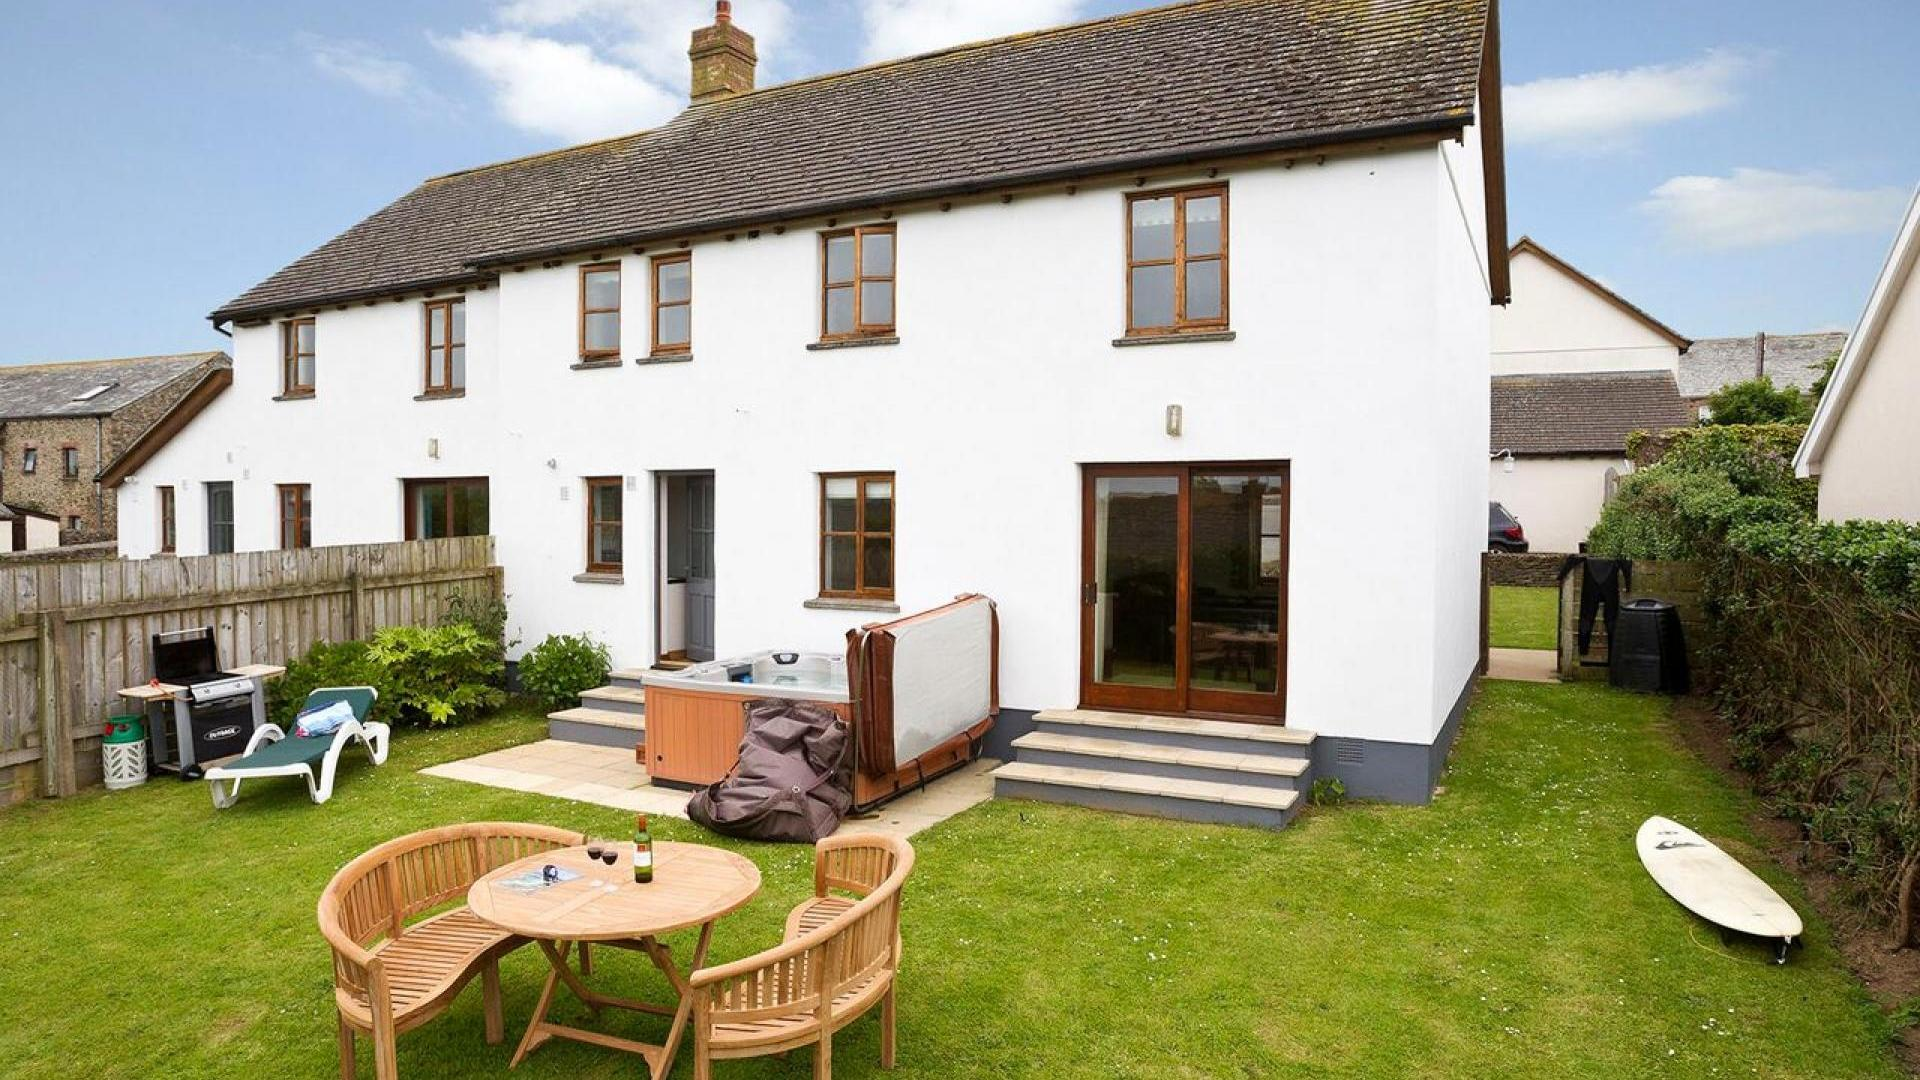 3 bedroom child friendly cottage near Bude Cornwall - KTSY